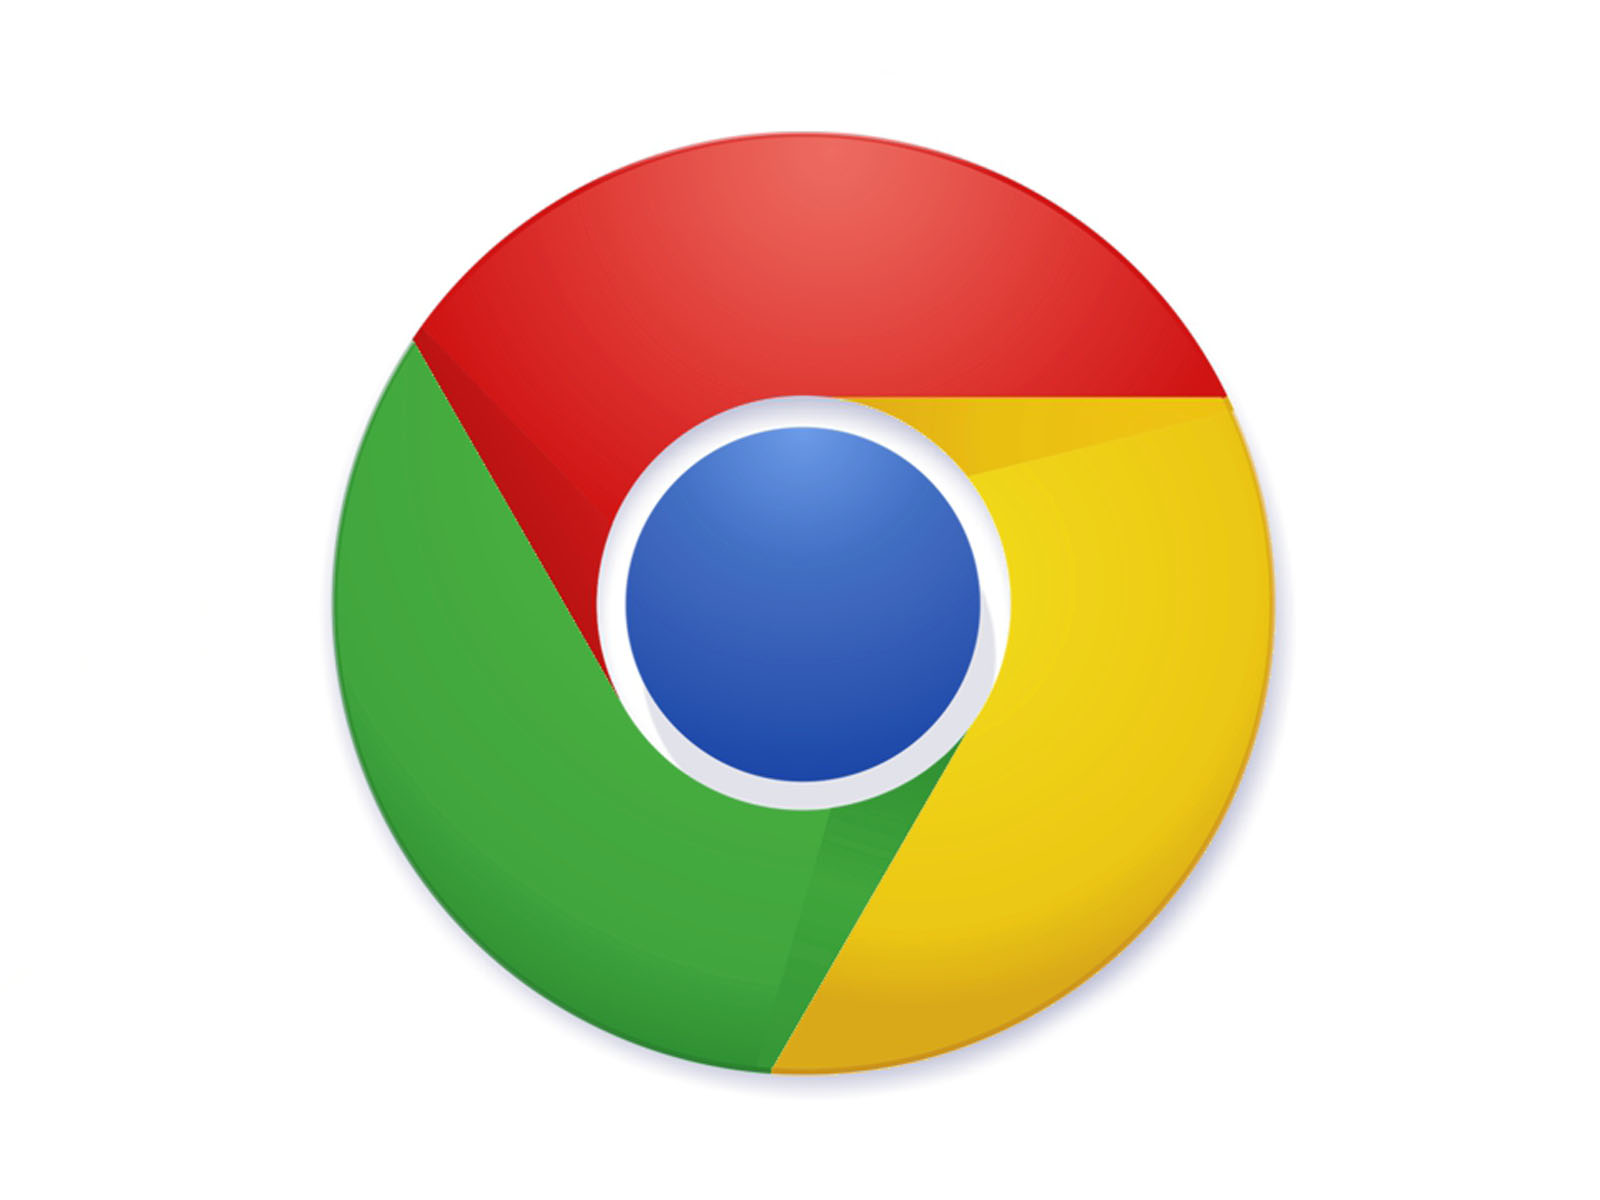 wallpaper: Google Favicon Wallpapers Pictures Google